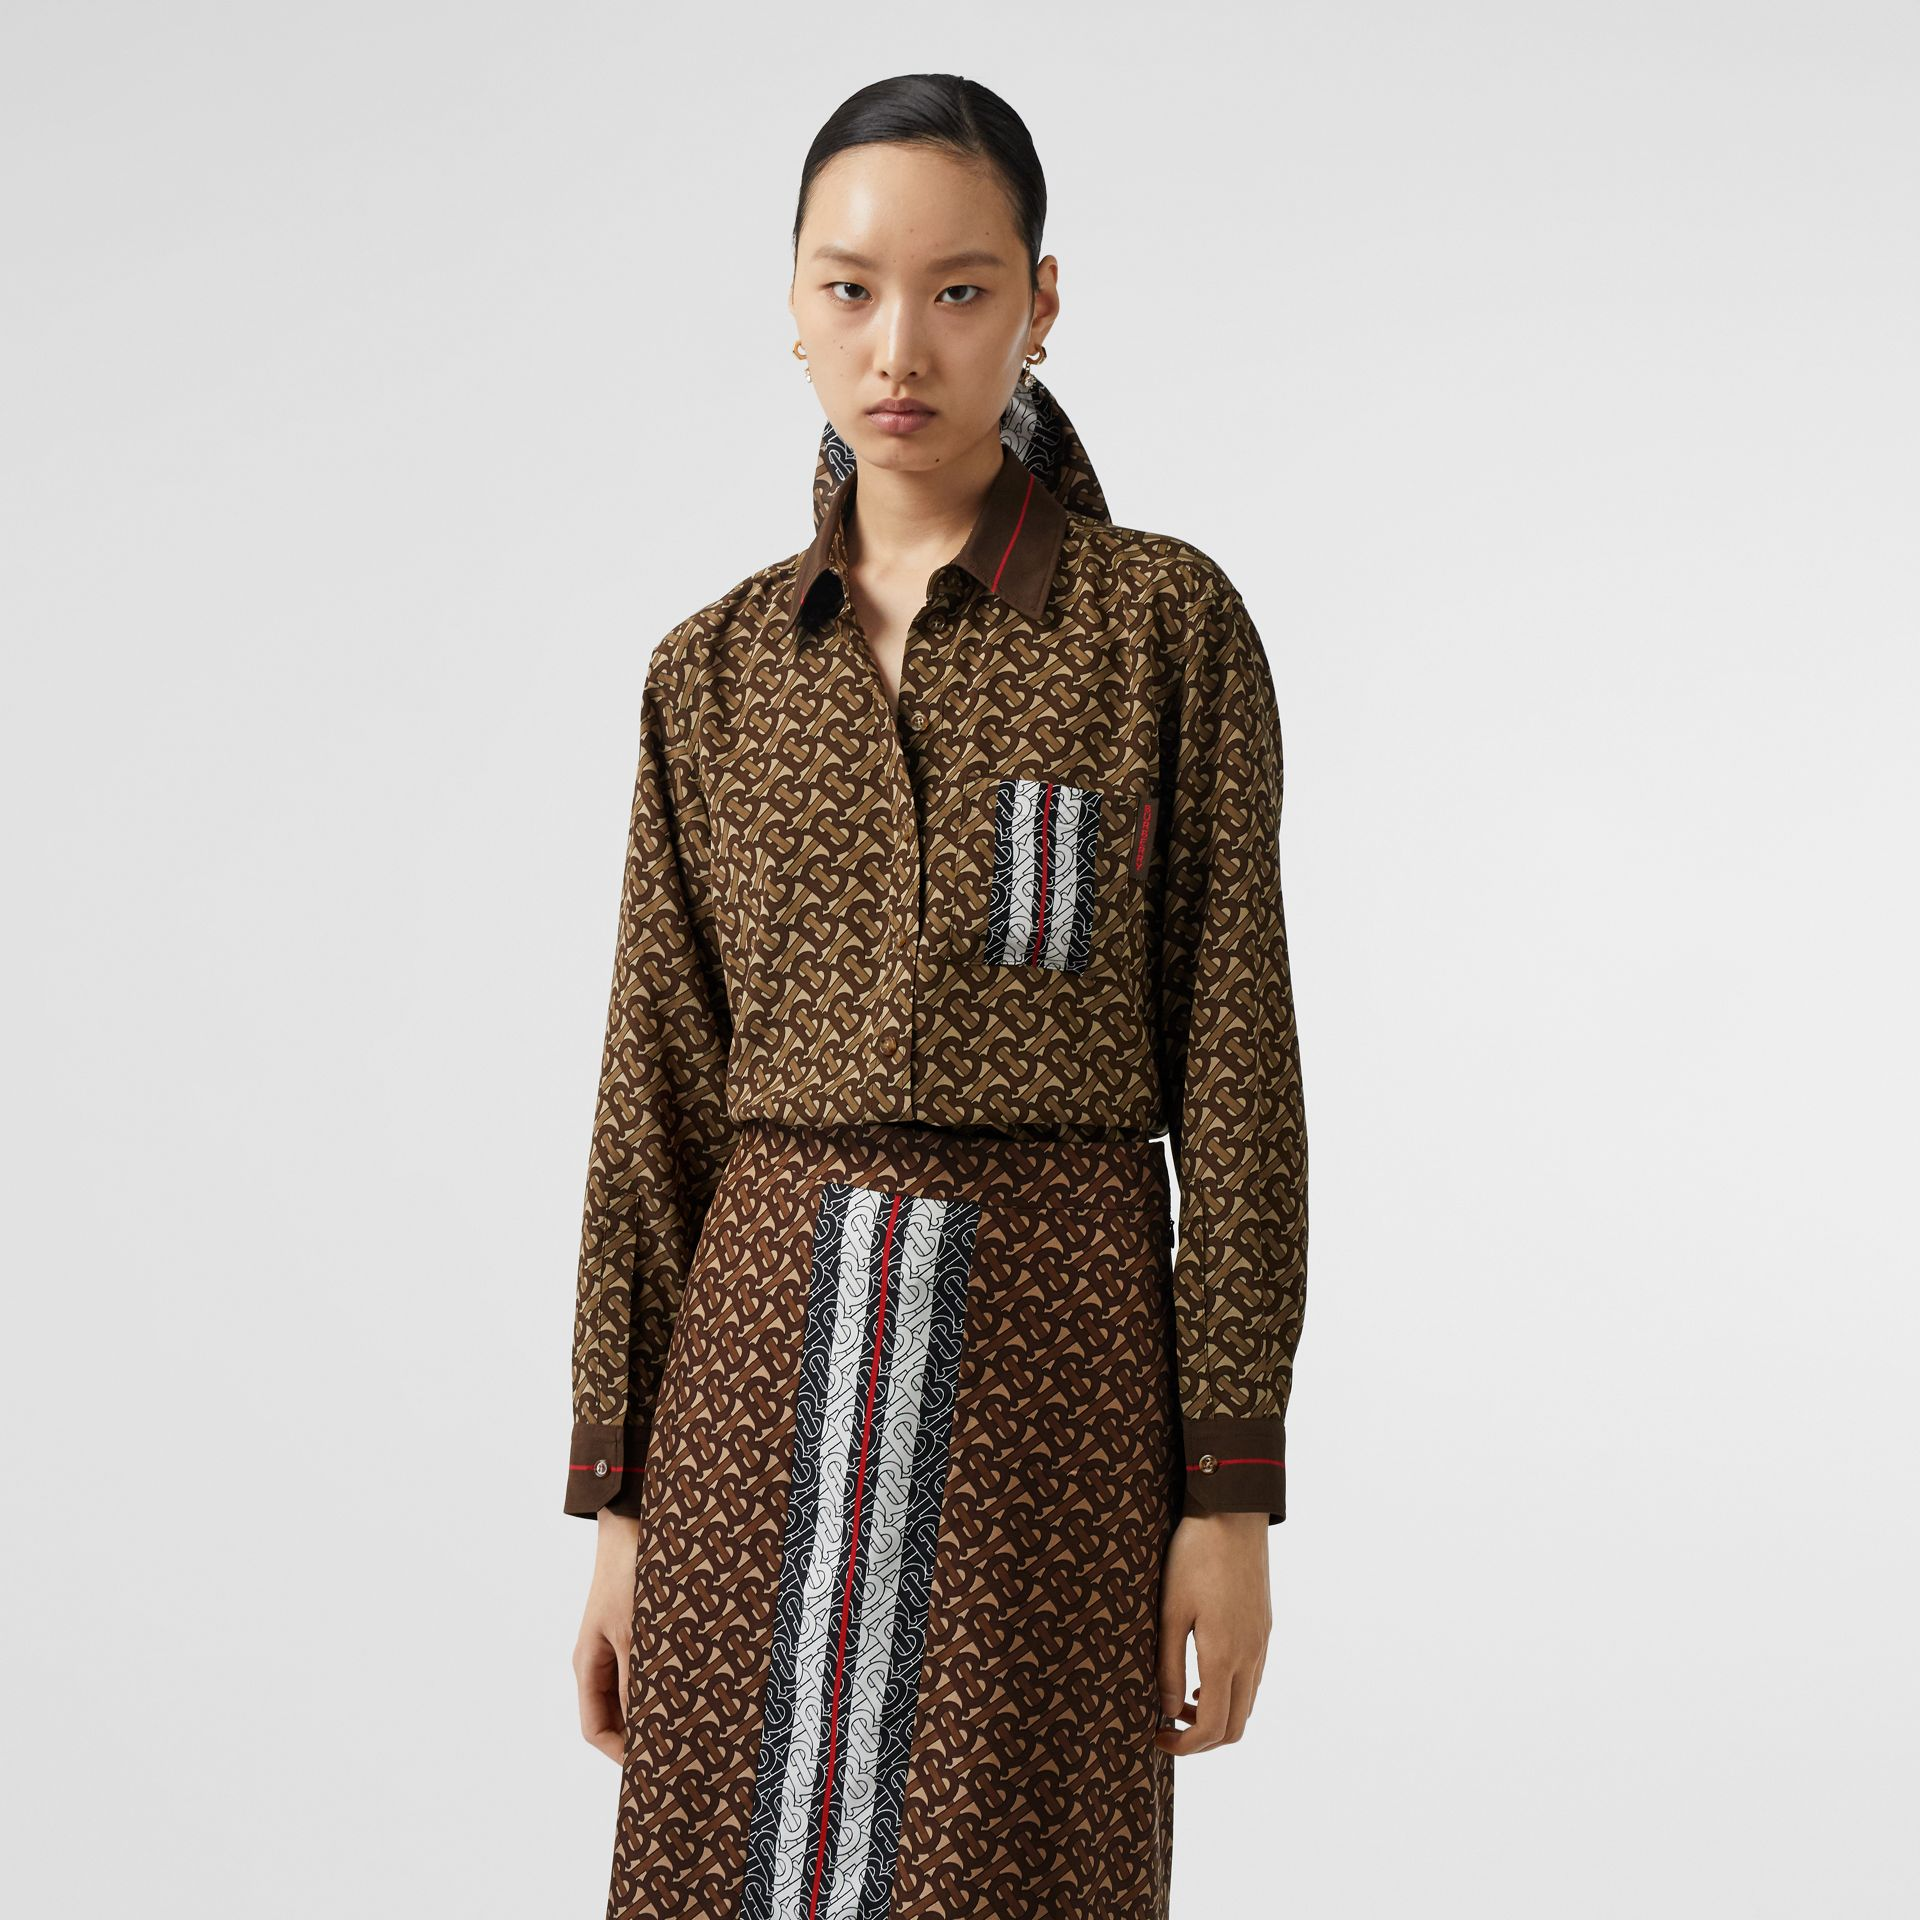 Monogram Stripe Print Silk Oversized Shirt in Bridle Brown - Women | Burberry United States - gallery image 4